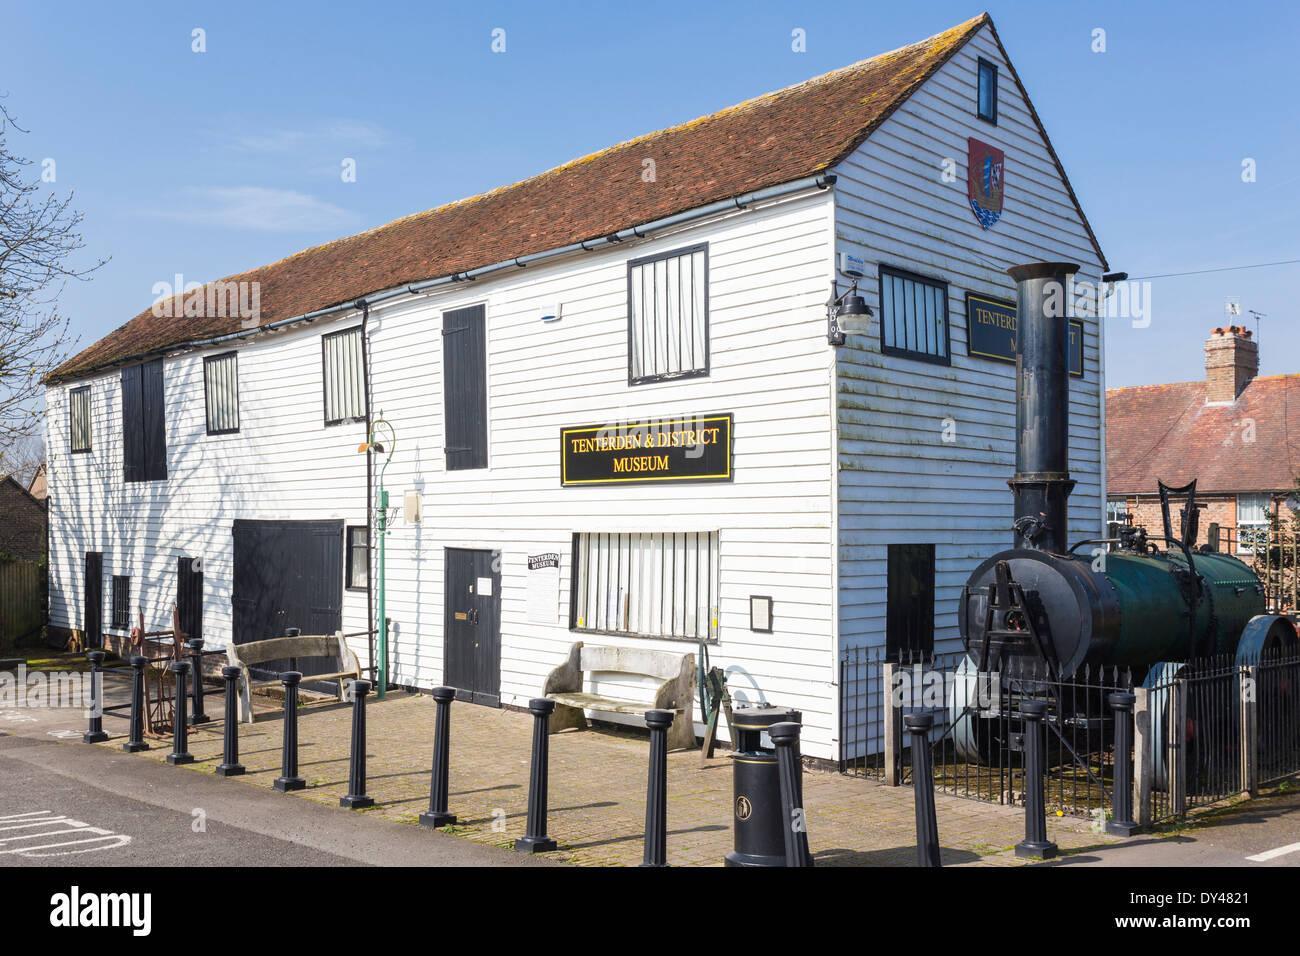 Tenterden and District Museum - Stock Image